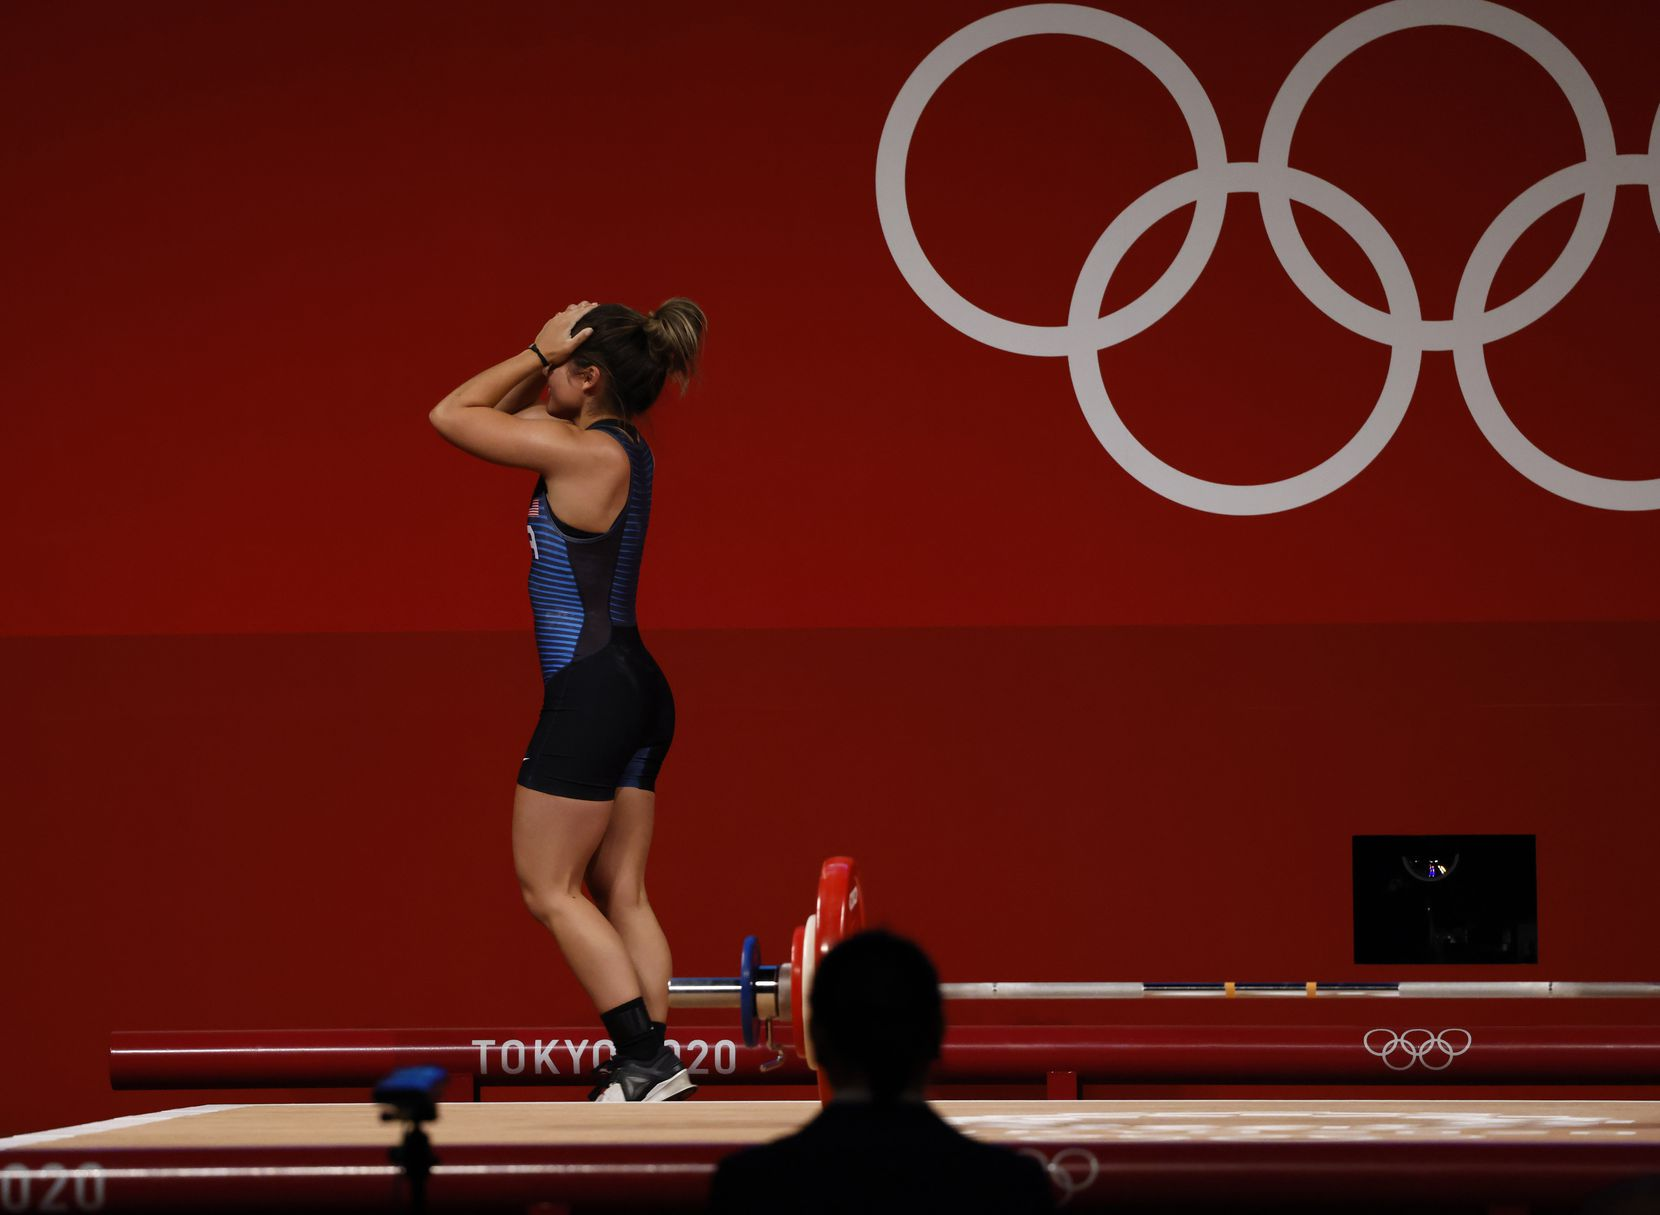 USA's Jourdan Delacruz after attempting to lift 89kg on her third attempt of the snatch round during the women's 49 kg weightlifting final  during the postponed 2020 Tokyo Olympics at Tokyo International Forum on Saturday, July 24, 2021, in Tokyo, Japan. Delacruz received a no-lift from the judges on this lift. (Vernon Bryant/The Dallas Morning News)